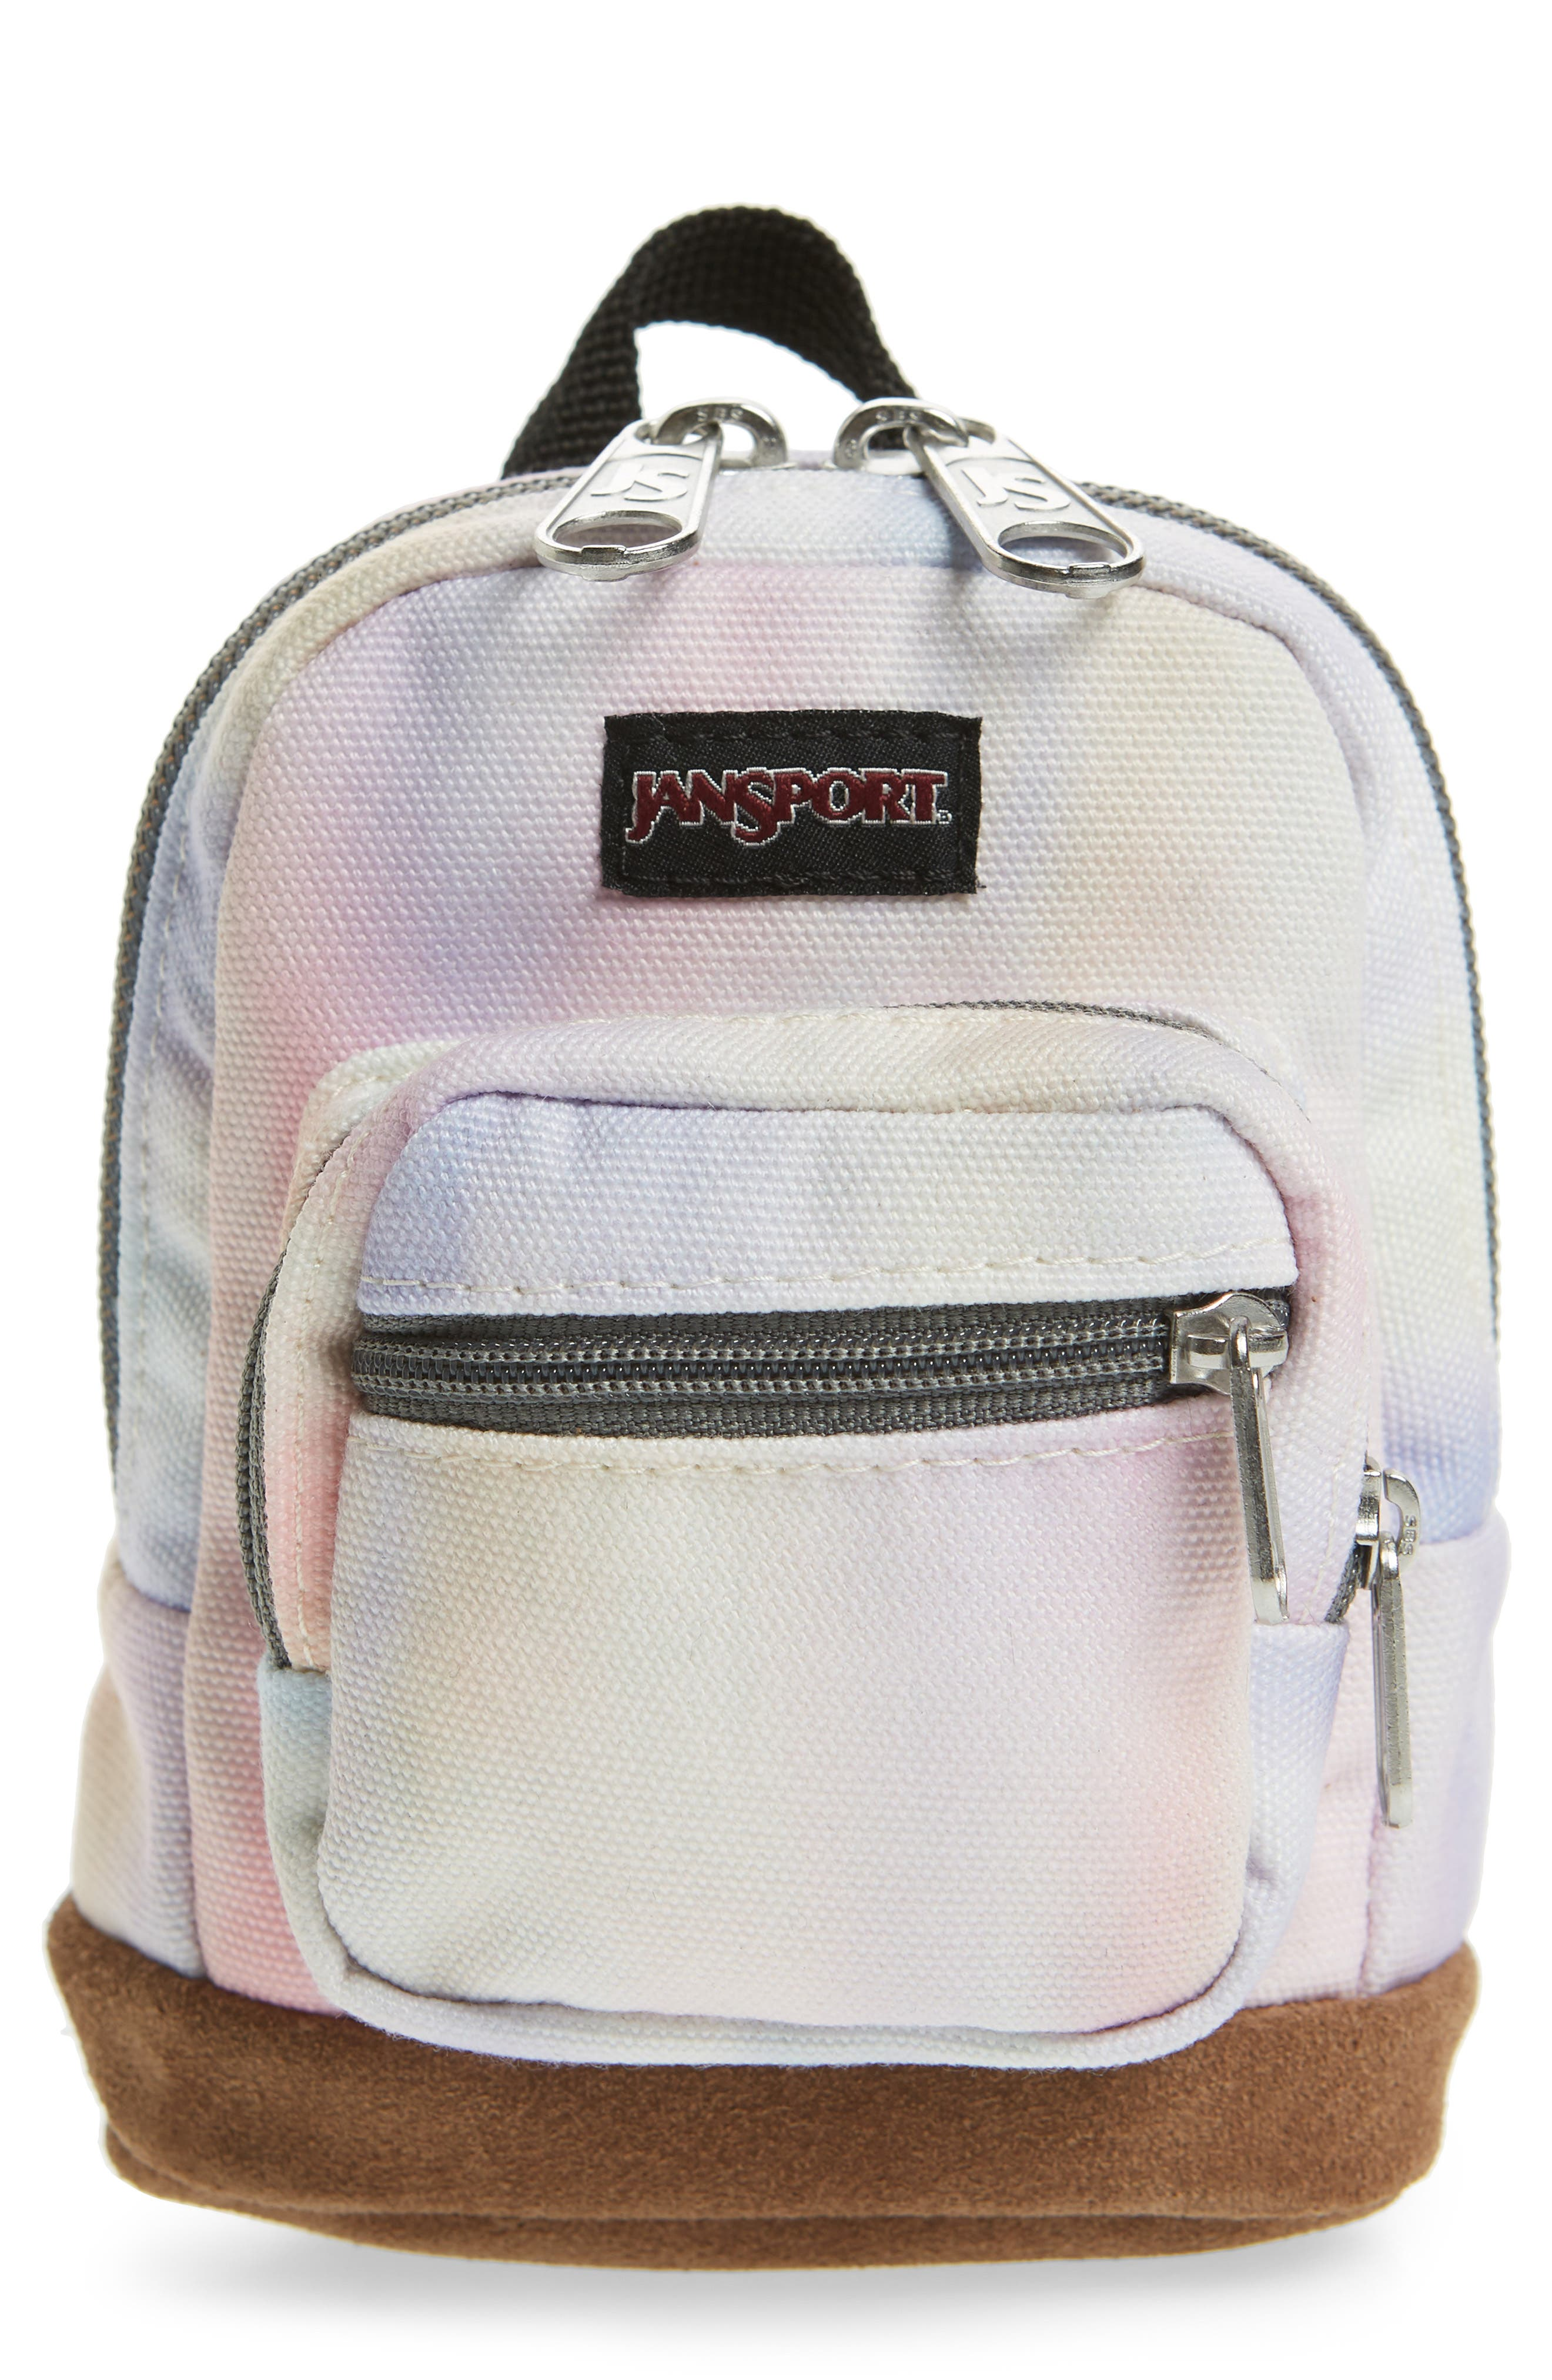 JANSPORT RIGHT POUCH MINI BACKPACK - PINK